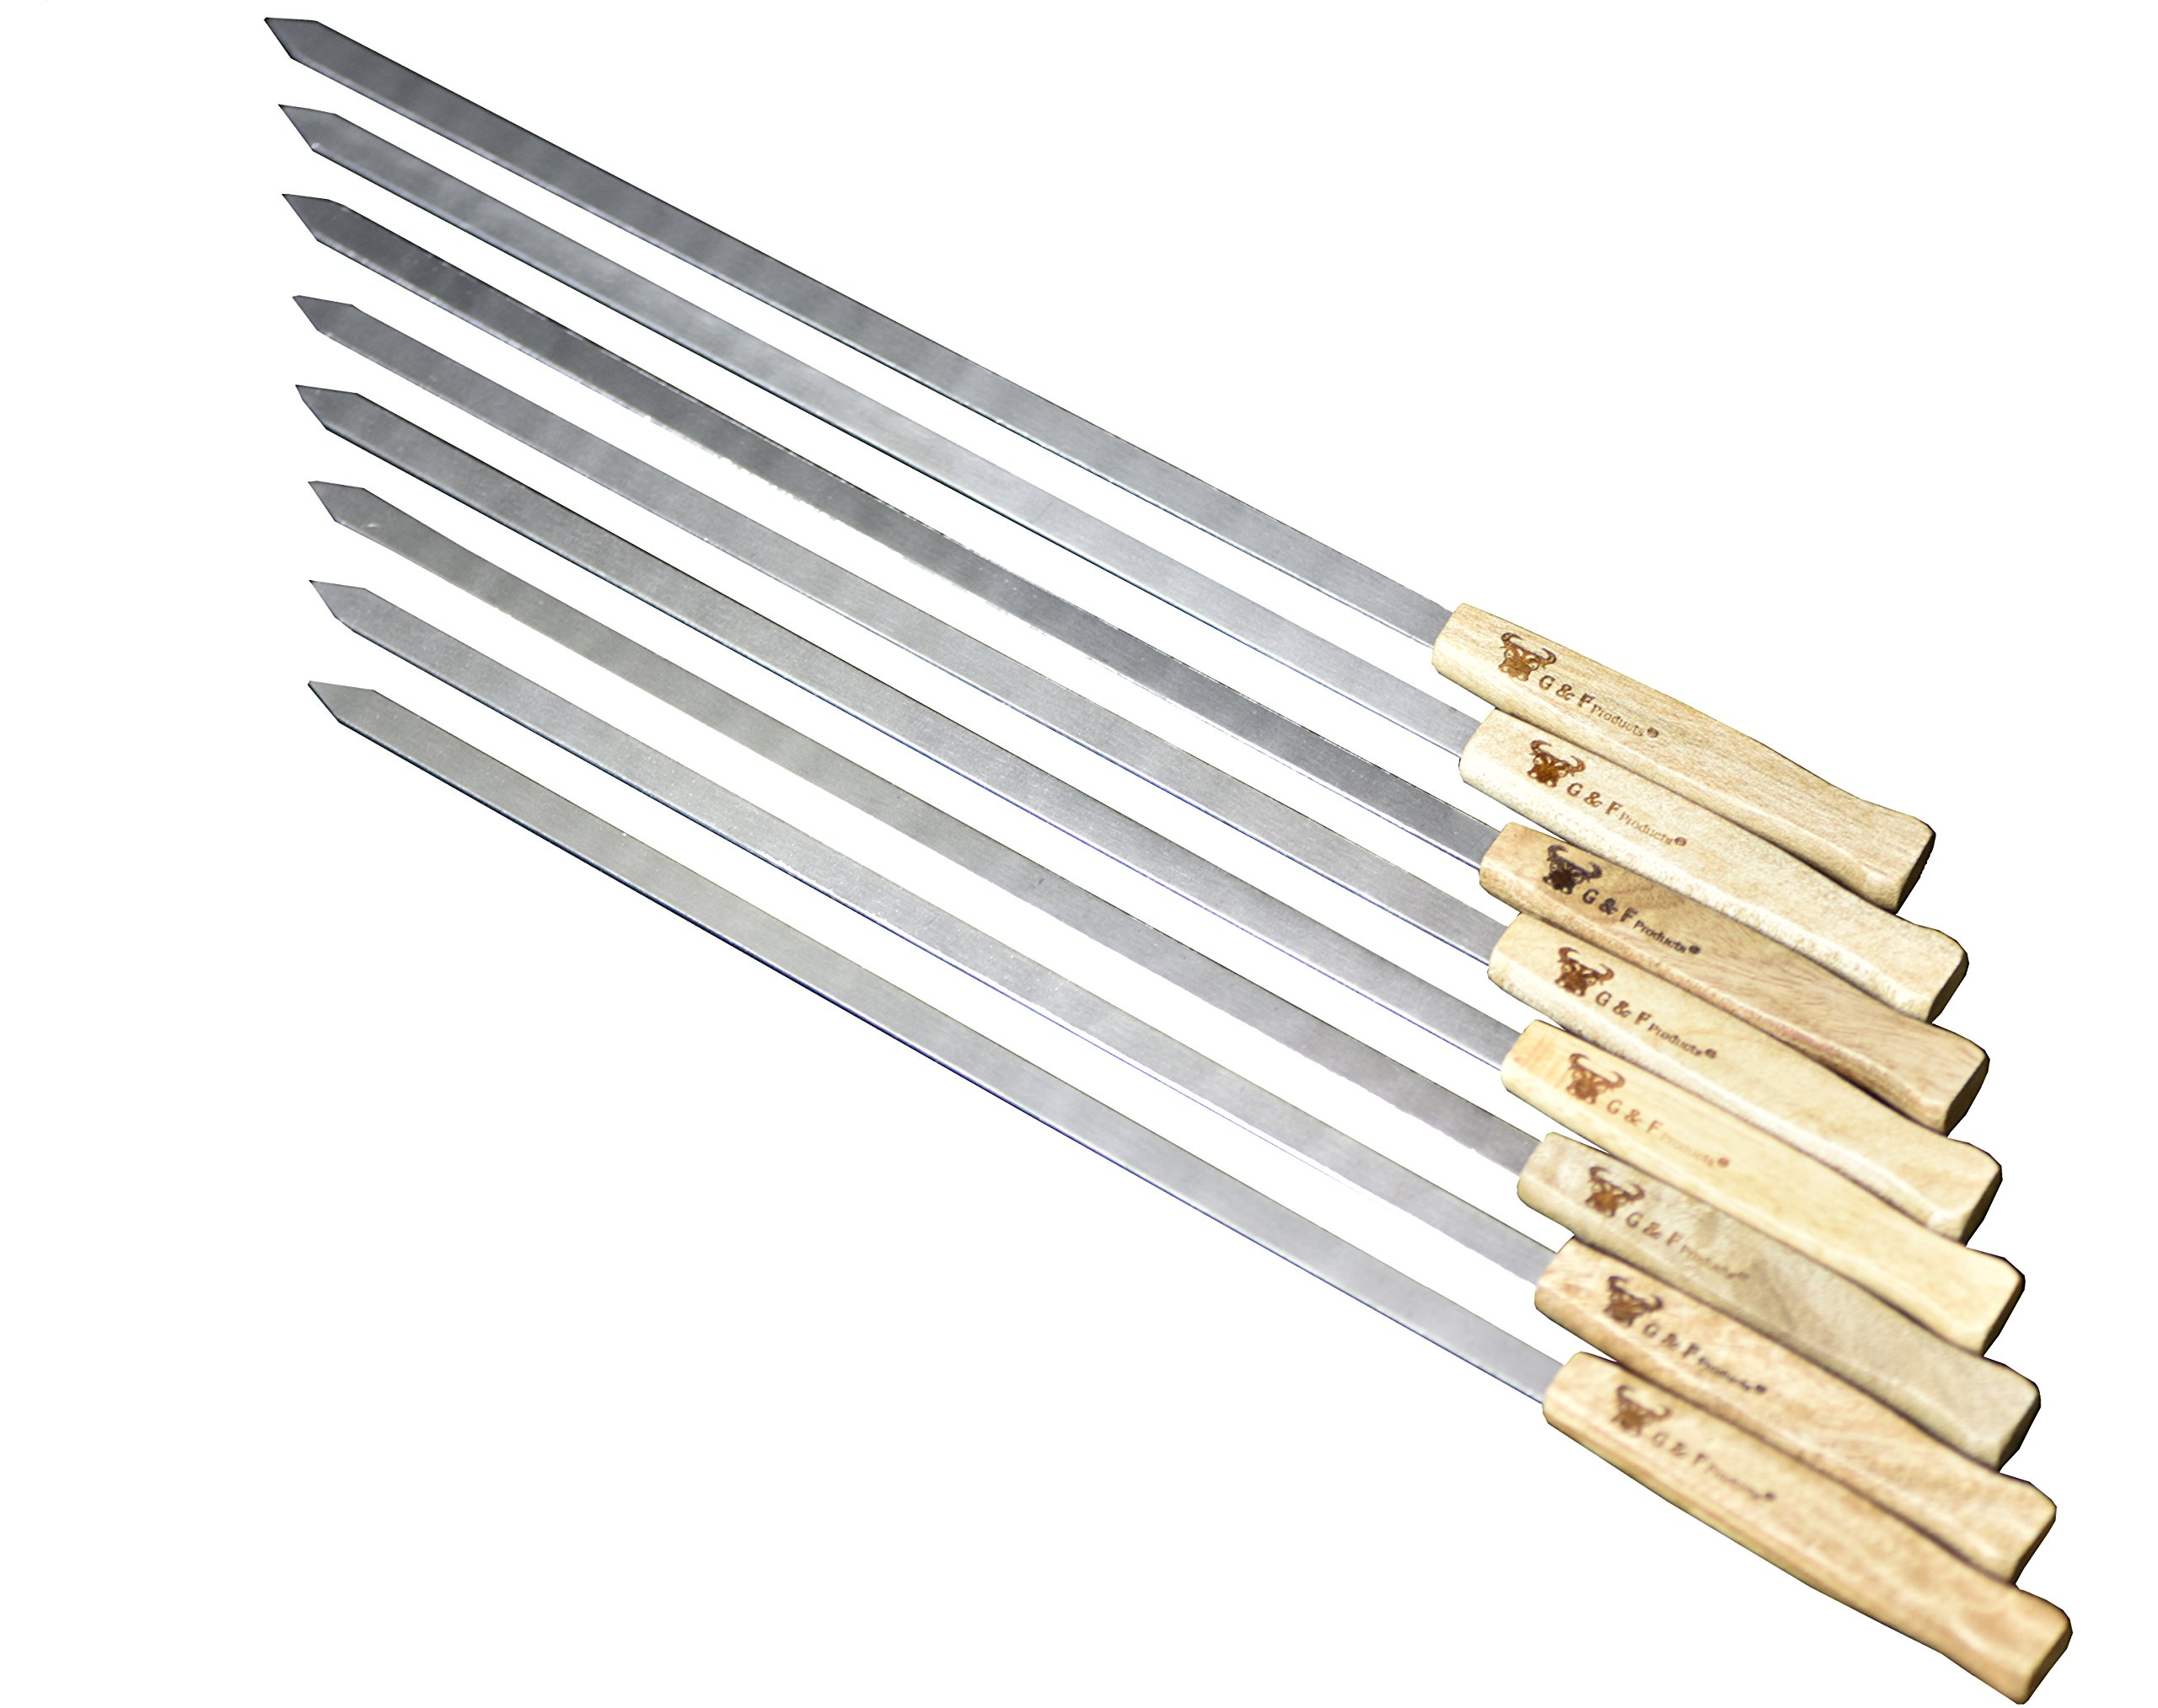 17-Inch Long, Large Stainless Steel Brazilian-Style BBQ Skewers with hard wood Handle, Kebab Kabob Skewers, 3/8 Inch Wide Blade, Set of 8 Skewer with heavy duty Travel Bag by G & F Products